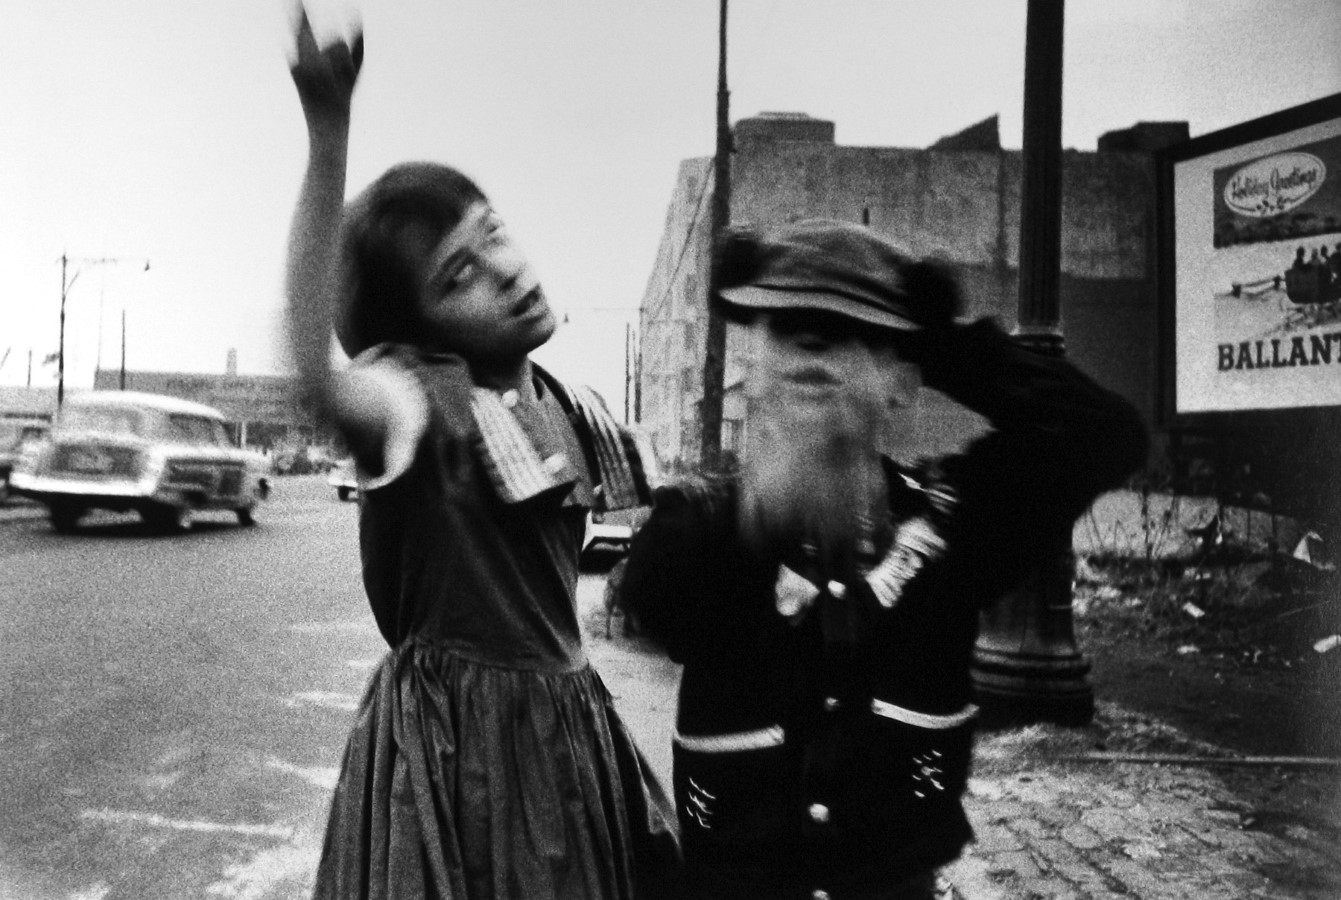 Dance in Brooklyn, New York, 1955